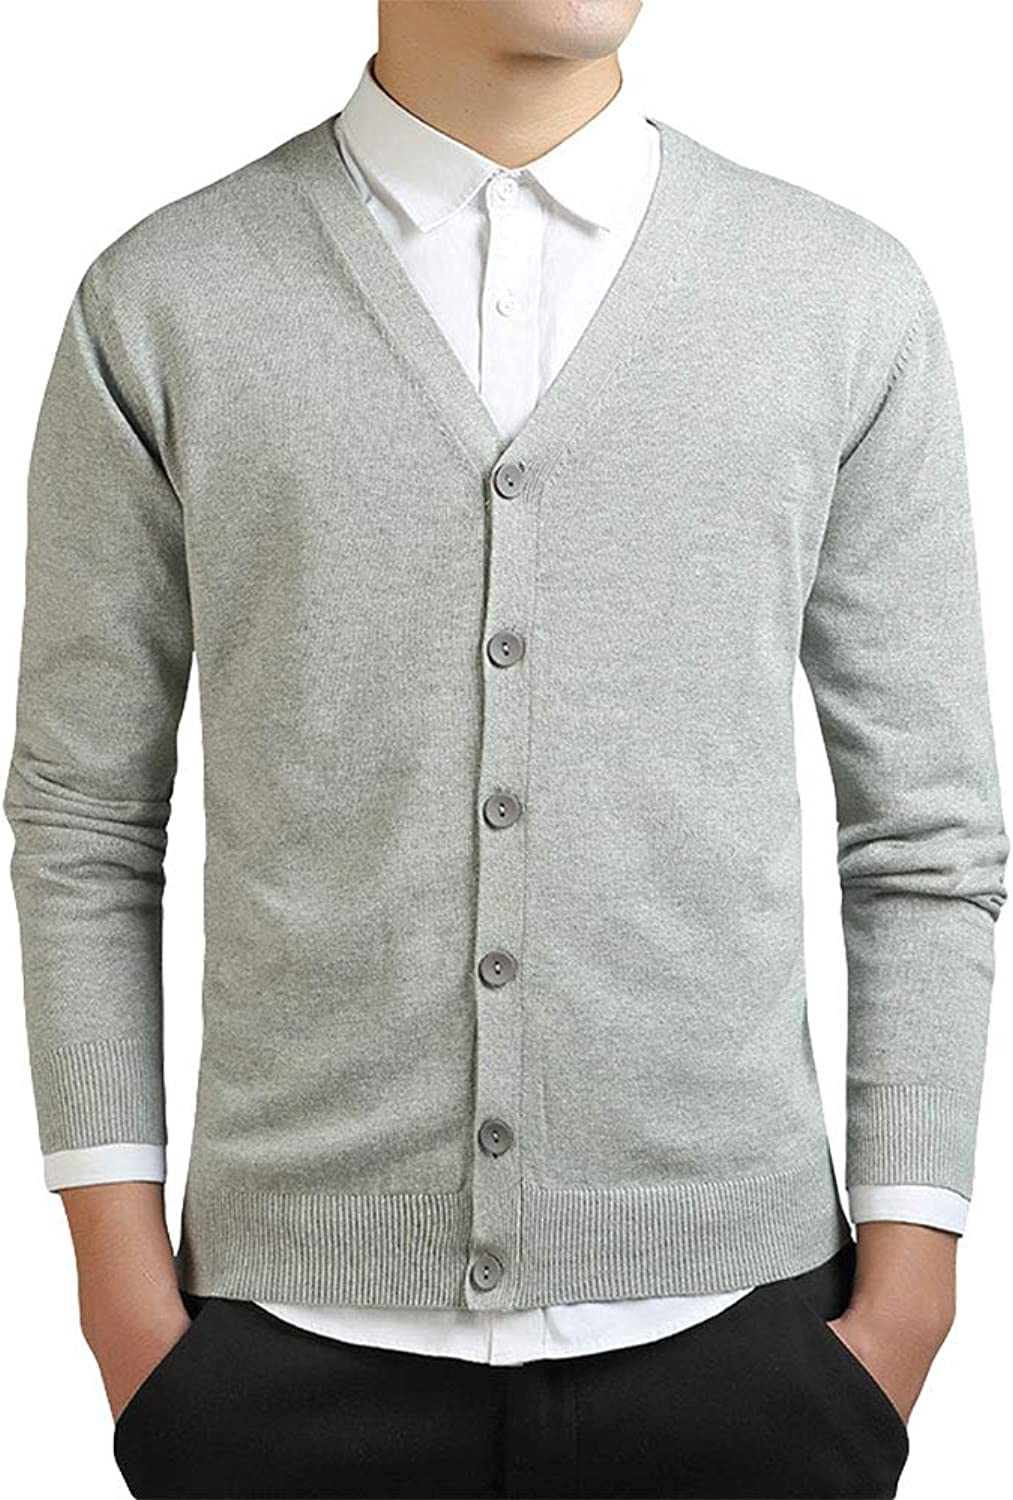 f14182591 ZooBoo ZooBoo ZooBoo V Neck Sweaters for Men - Winter Slim Fit Soft ...